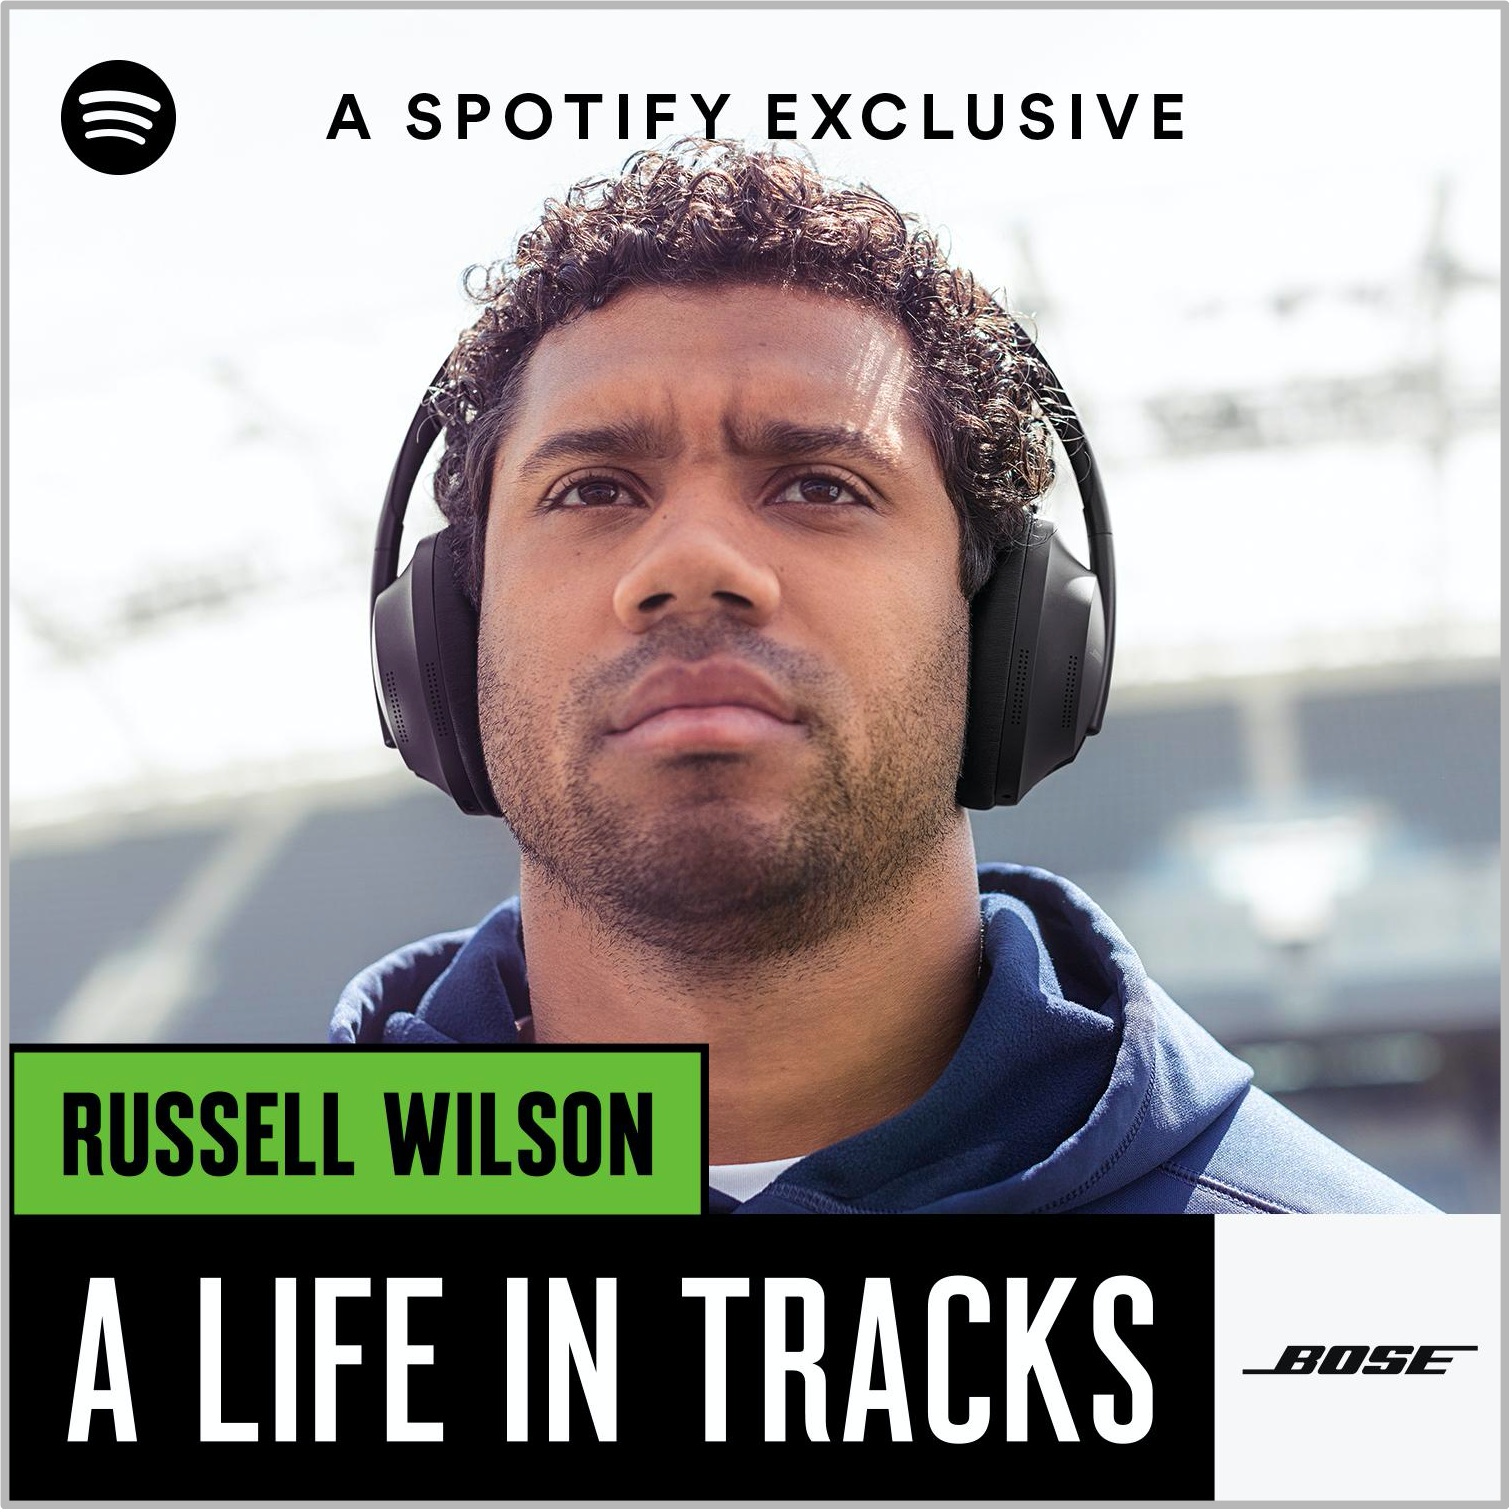 Spotify A Life In Tracks